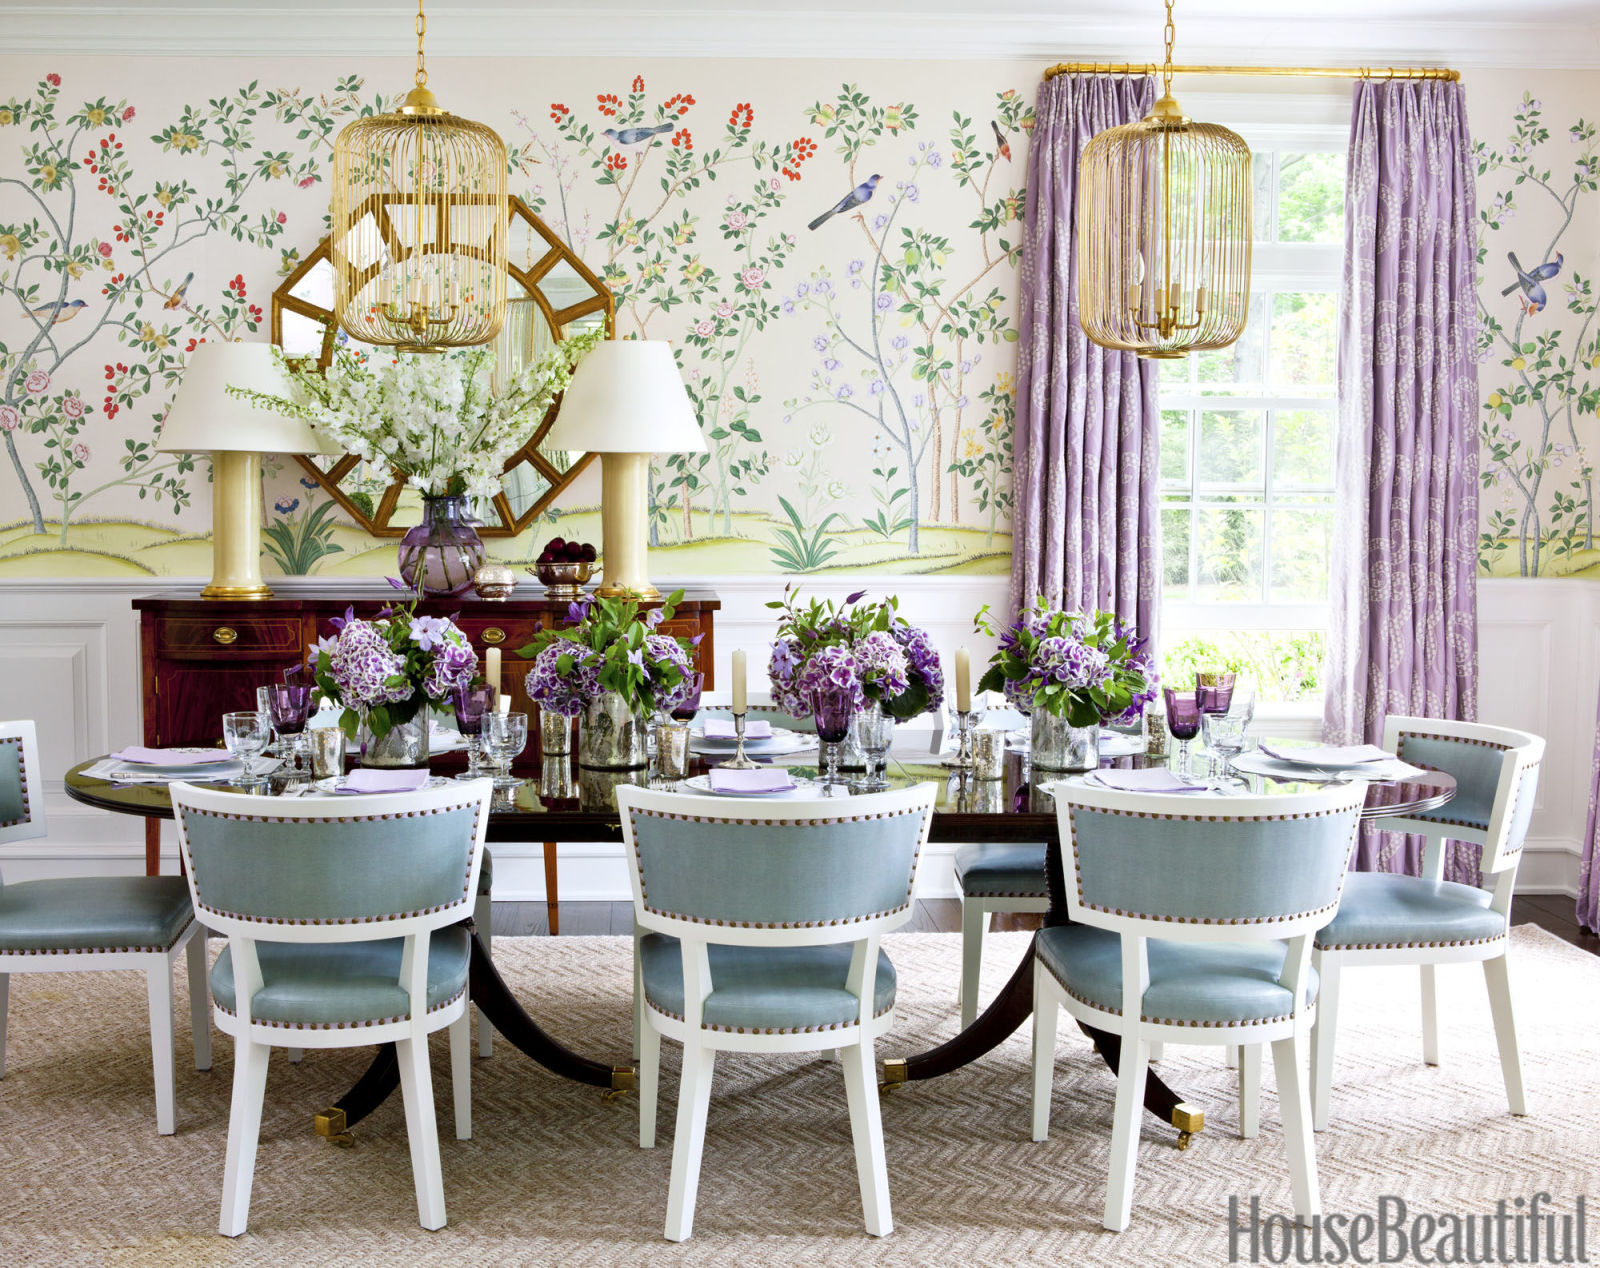 gallery-1445613163-garden-fresh-dining-room